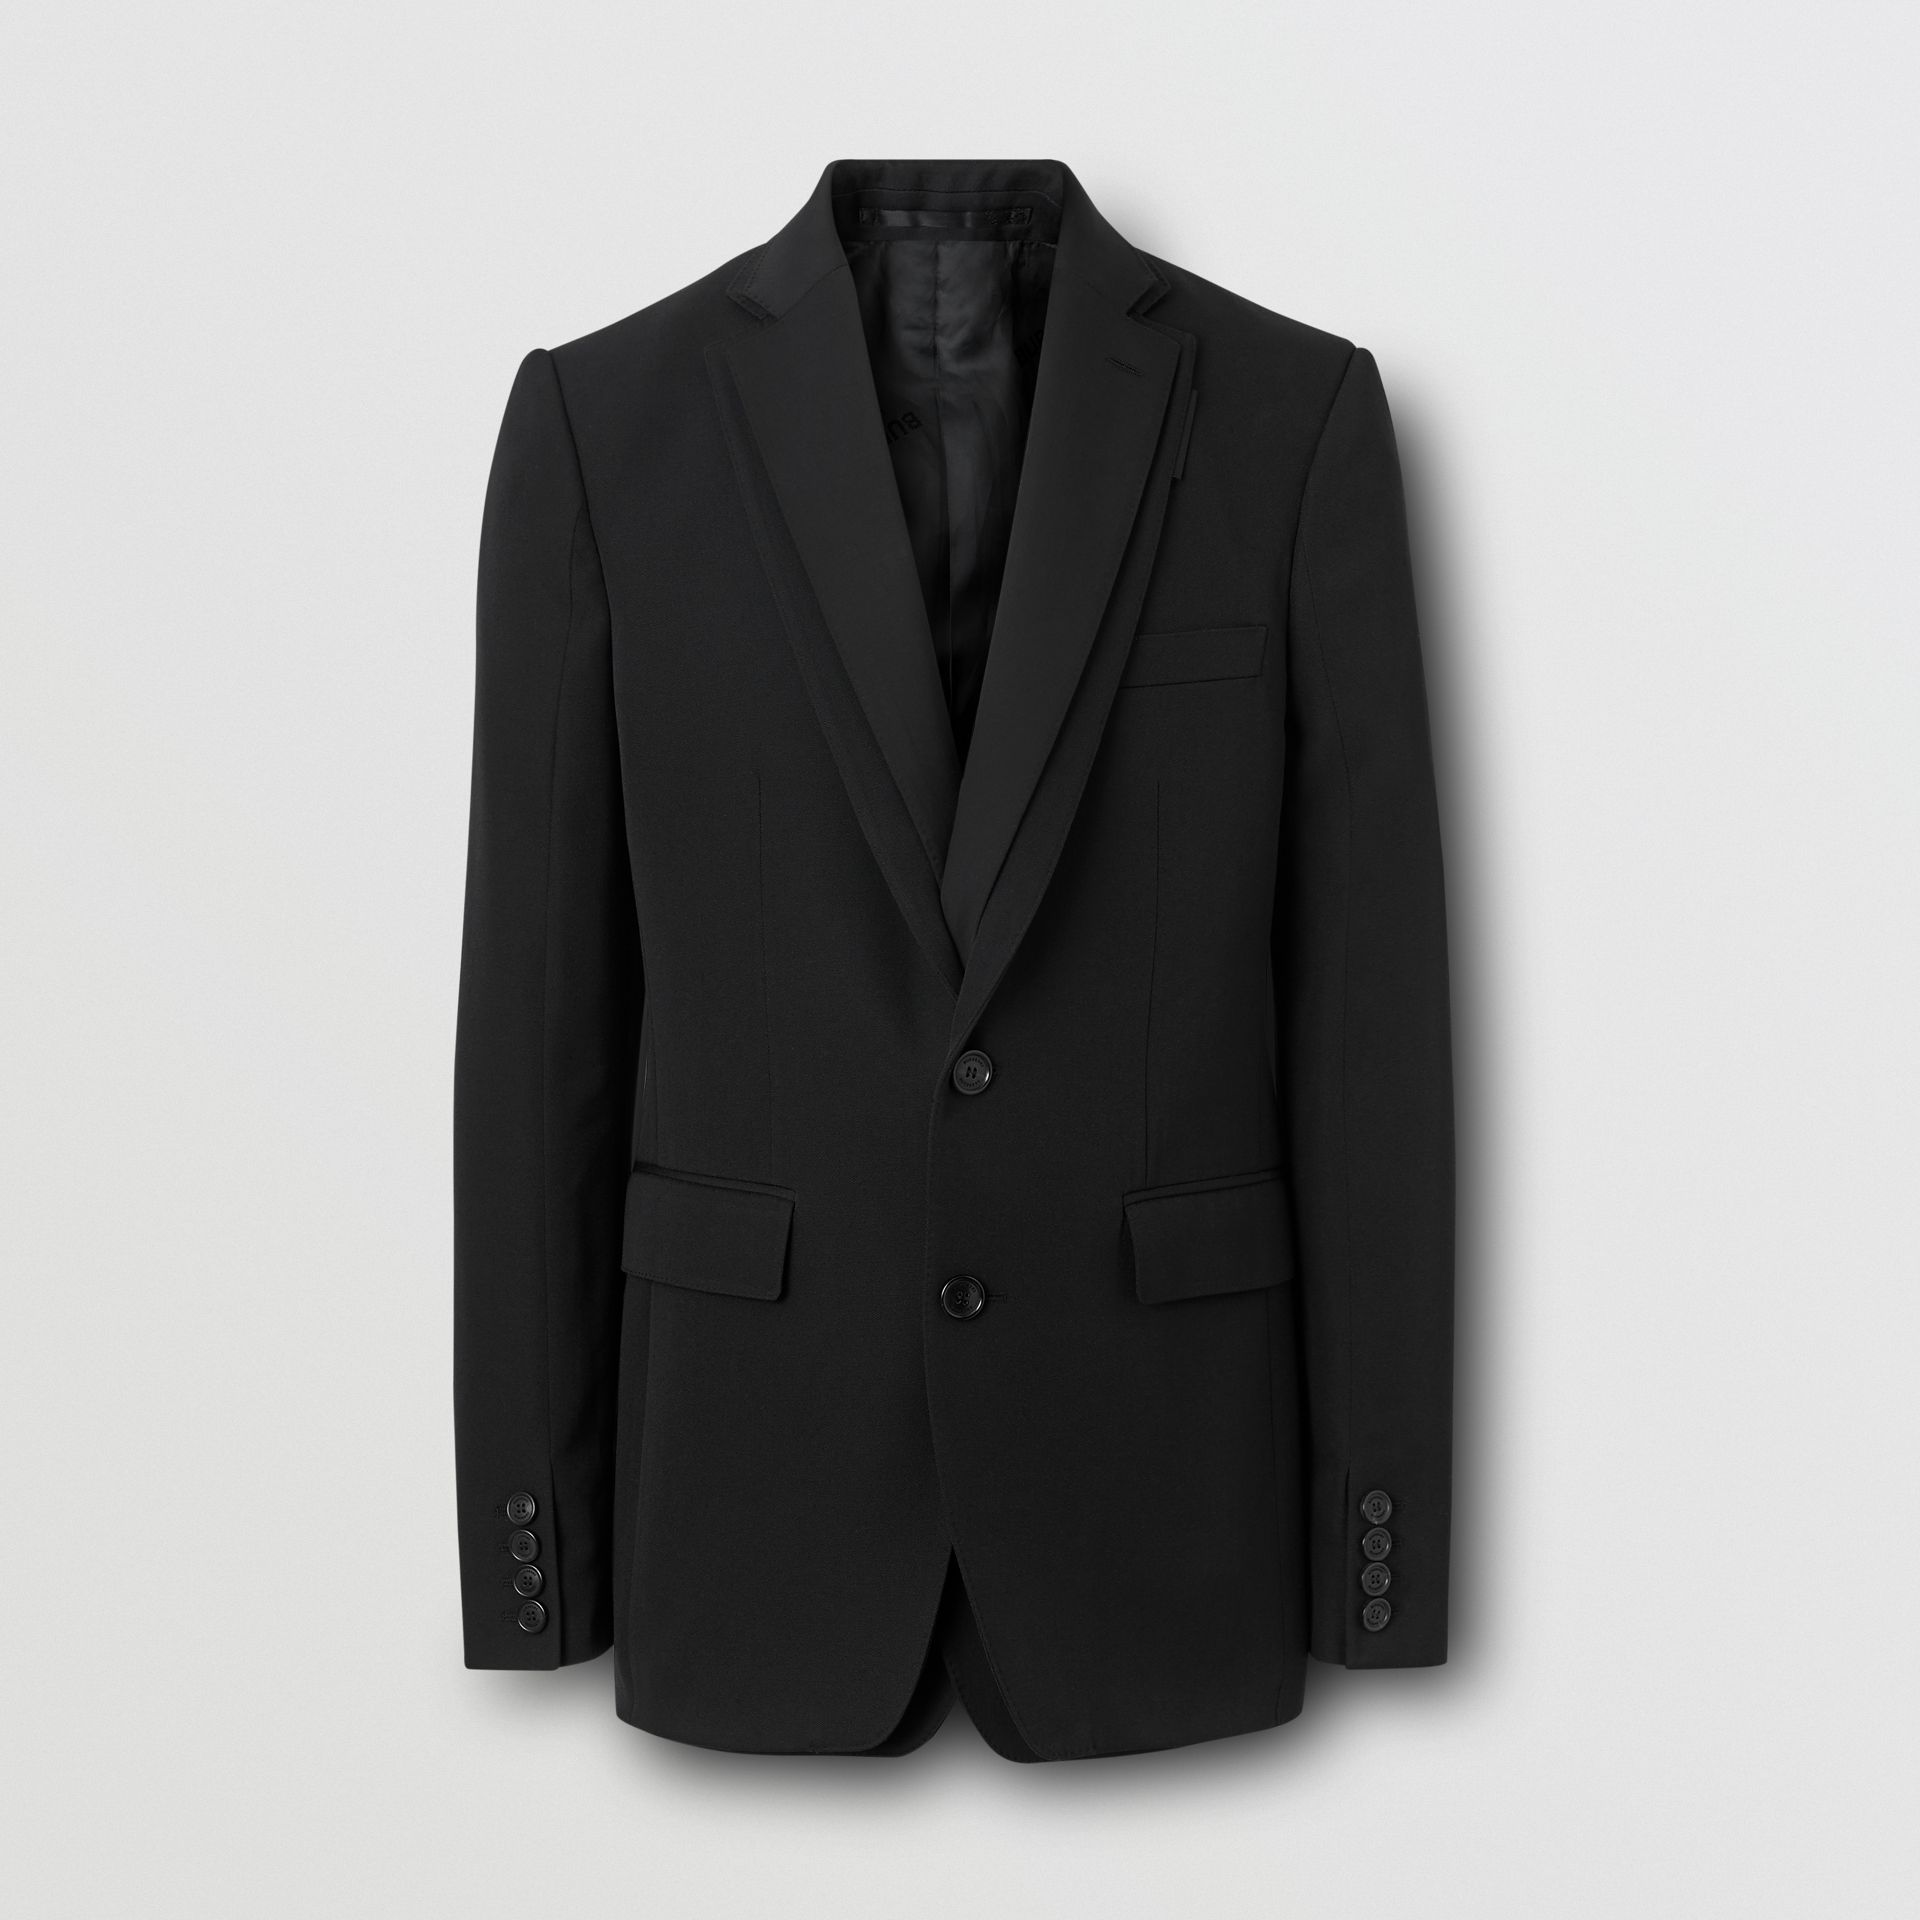 English Fit Reconstructed Wool Tailored Jacket in Black - Men | Burberry United Kingdom - gallery image 3